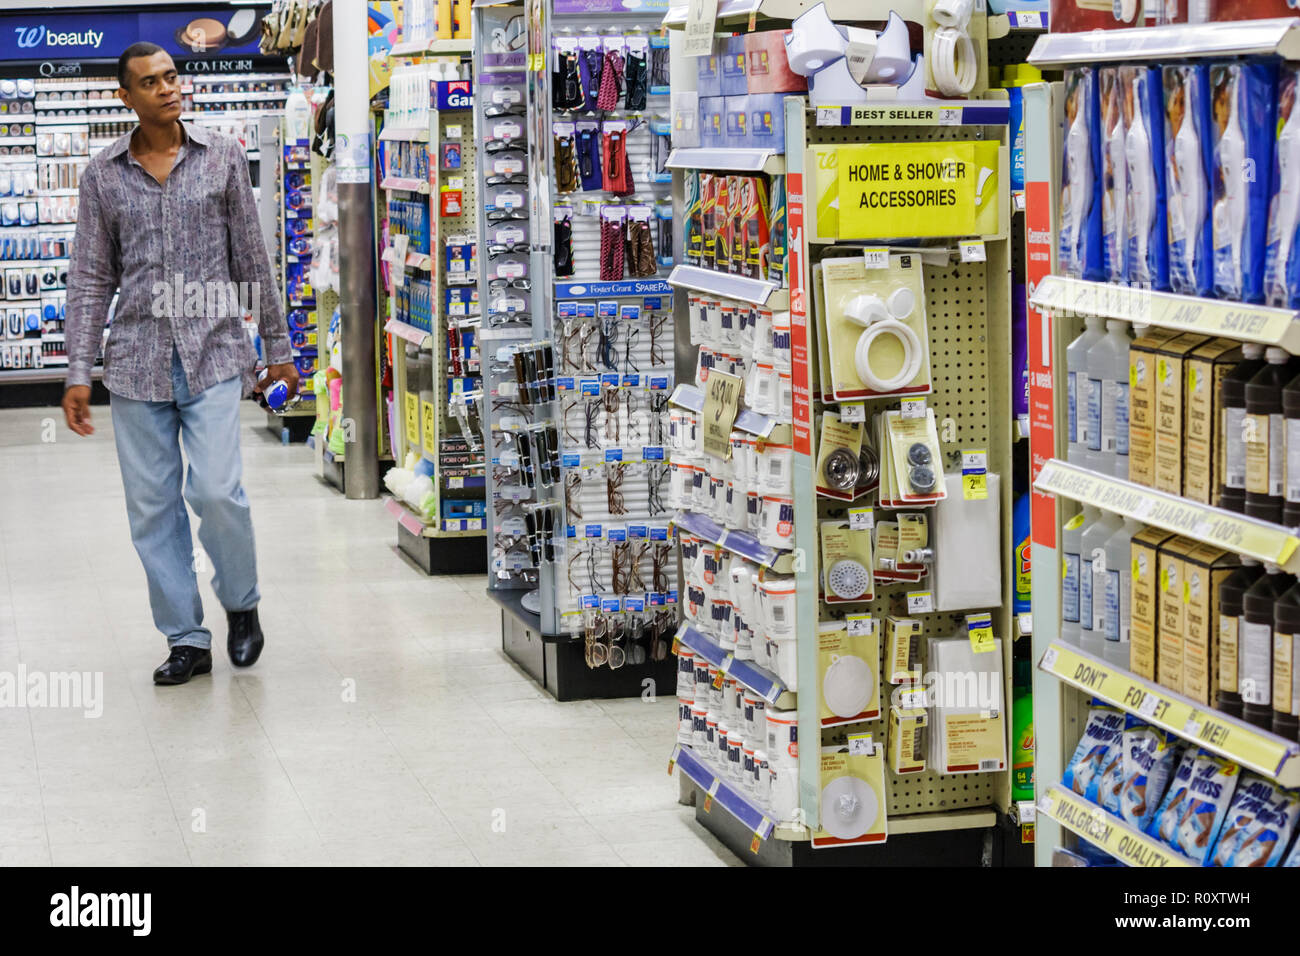 Miami Beach Florida Walgreens pharmacy drugstore retail chain business product display aisle shelf Black man shopping - Stock Image